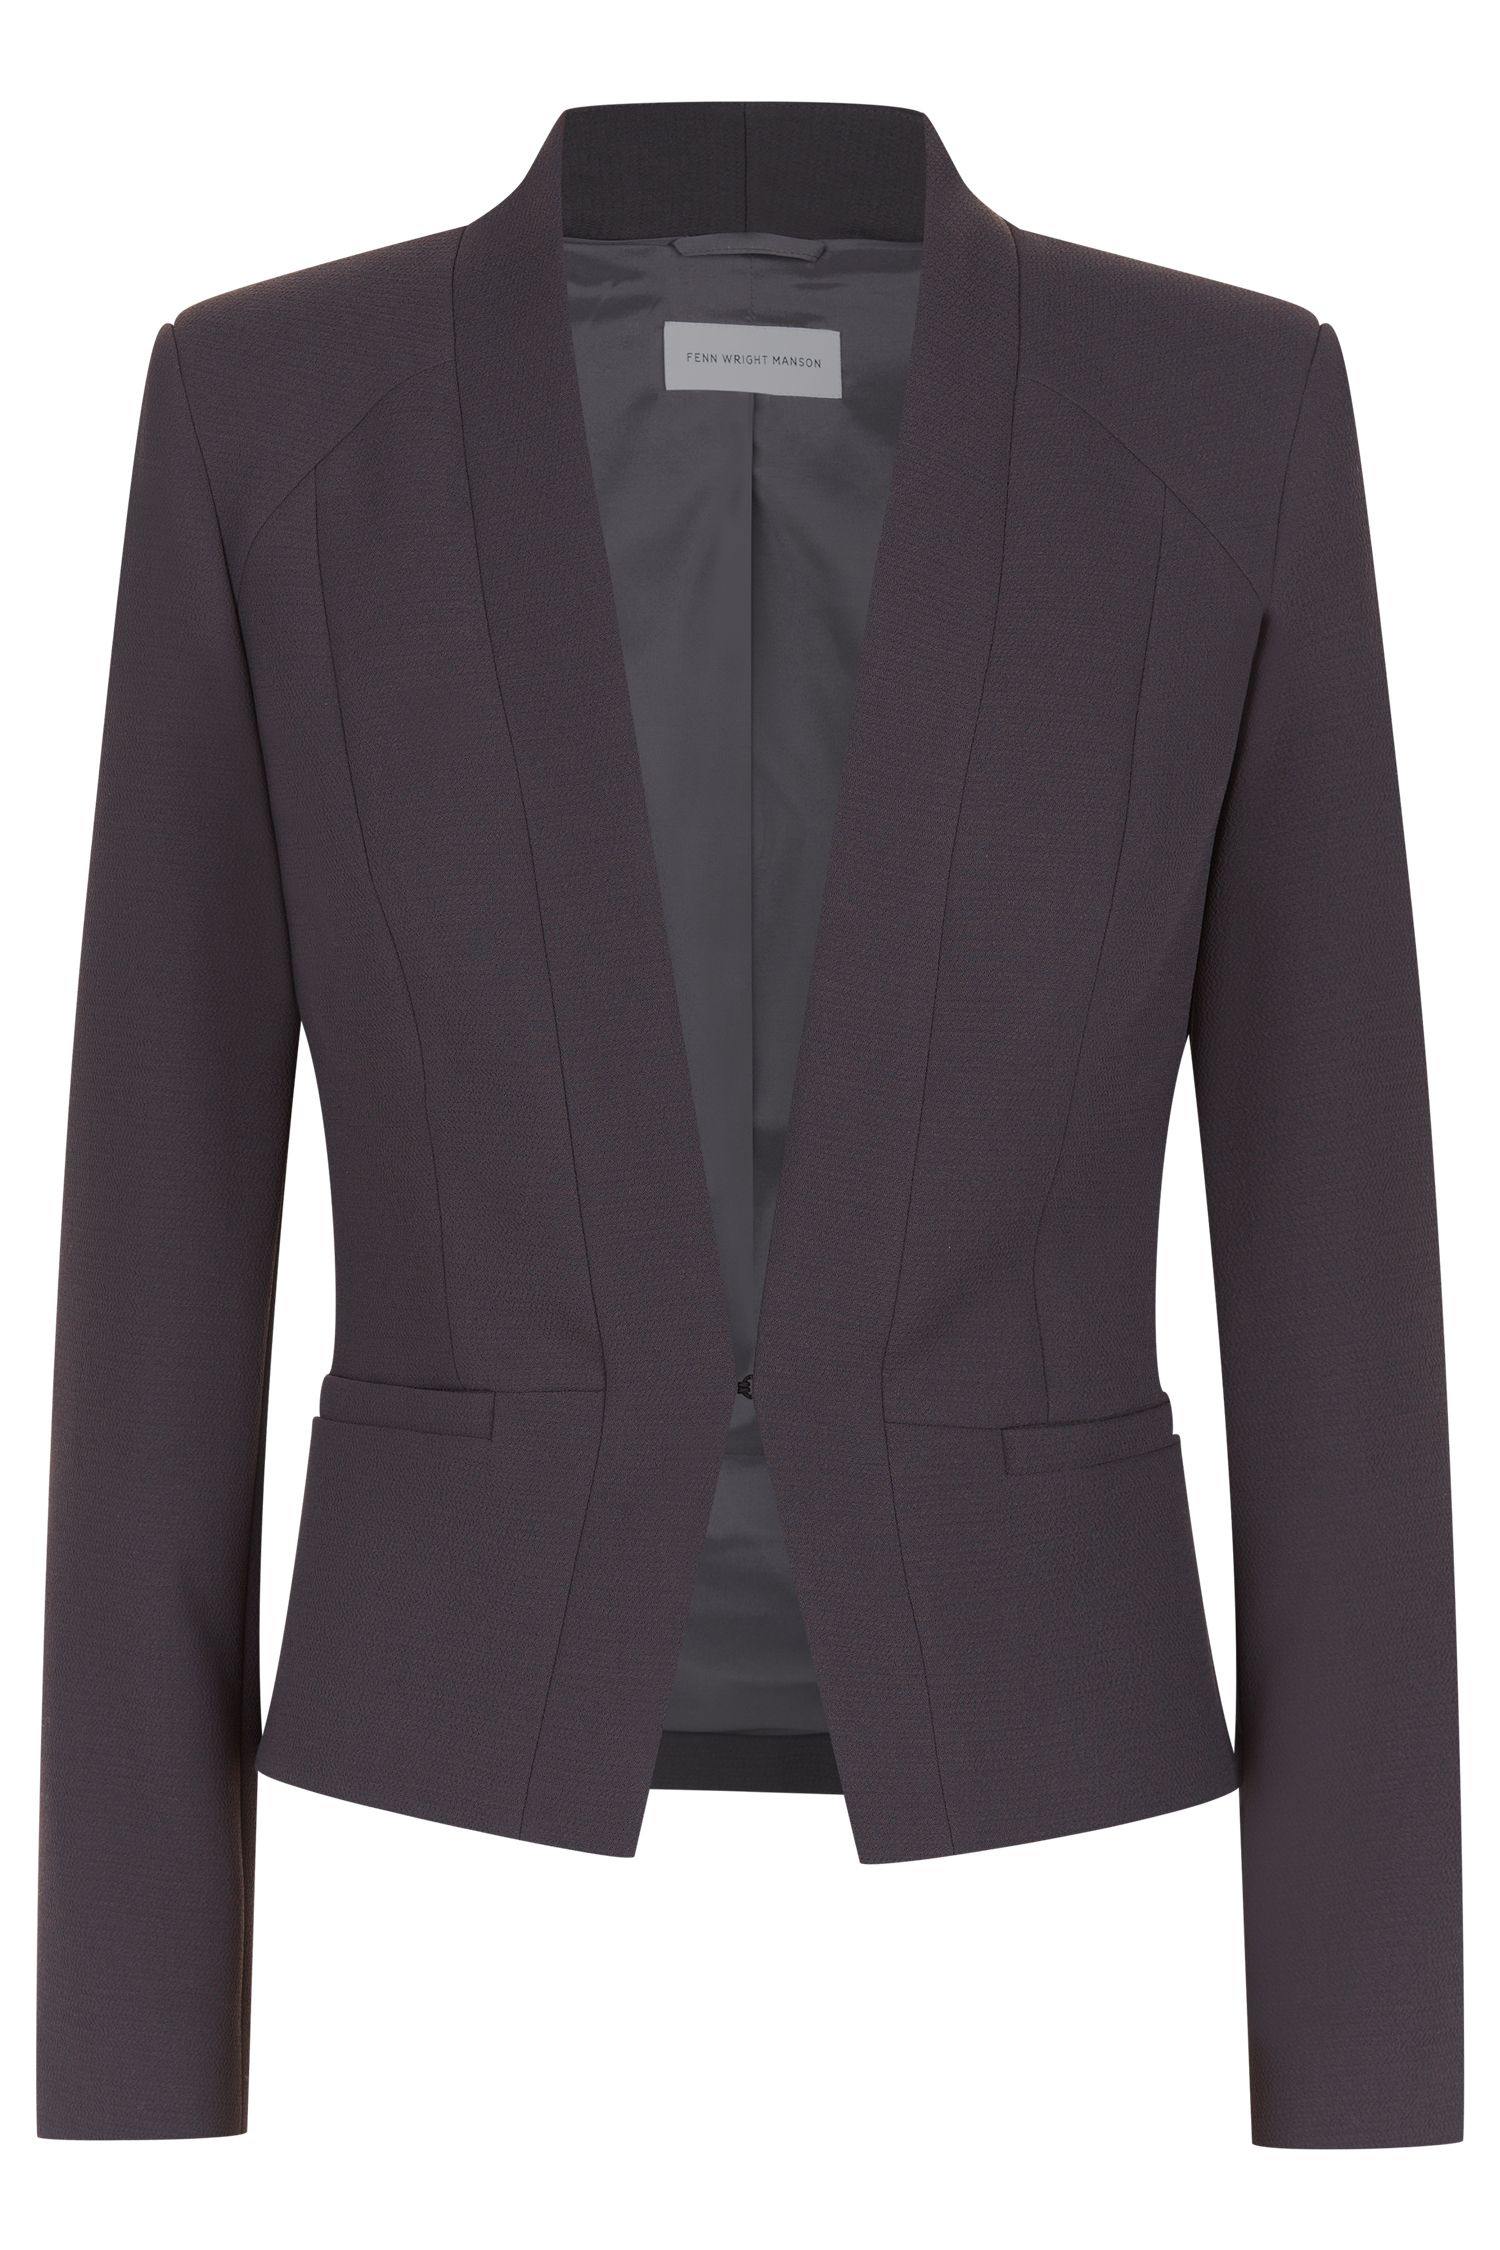 Fenn Wright Manson Orbit Jacket, Granite